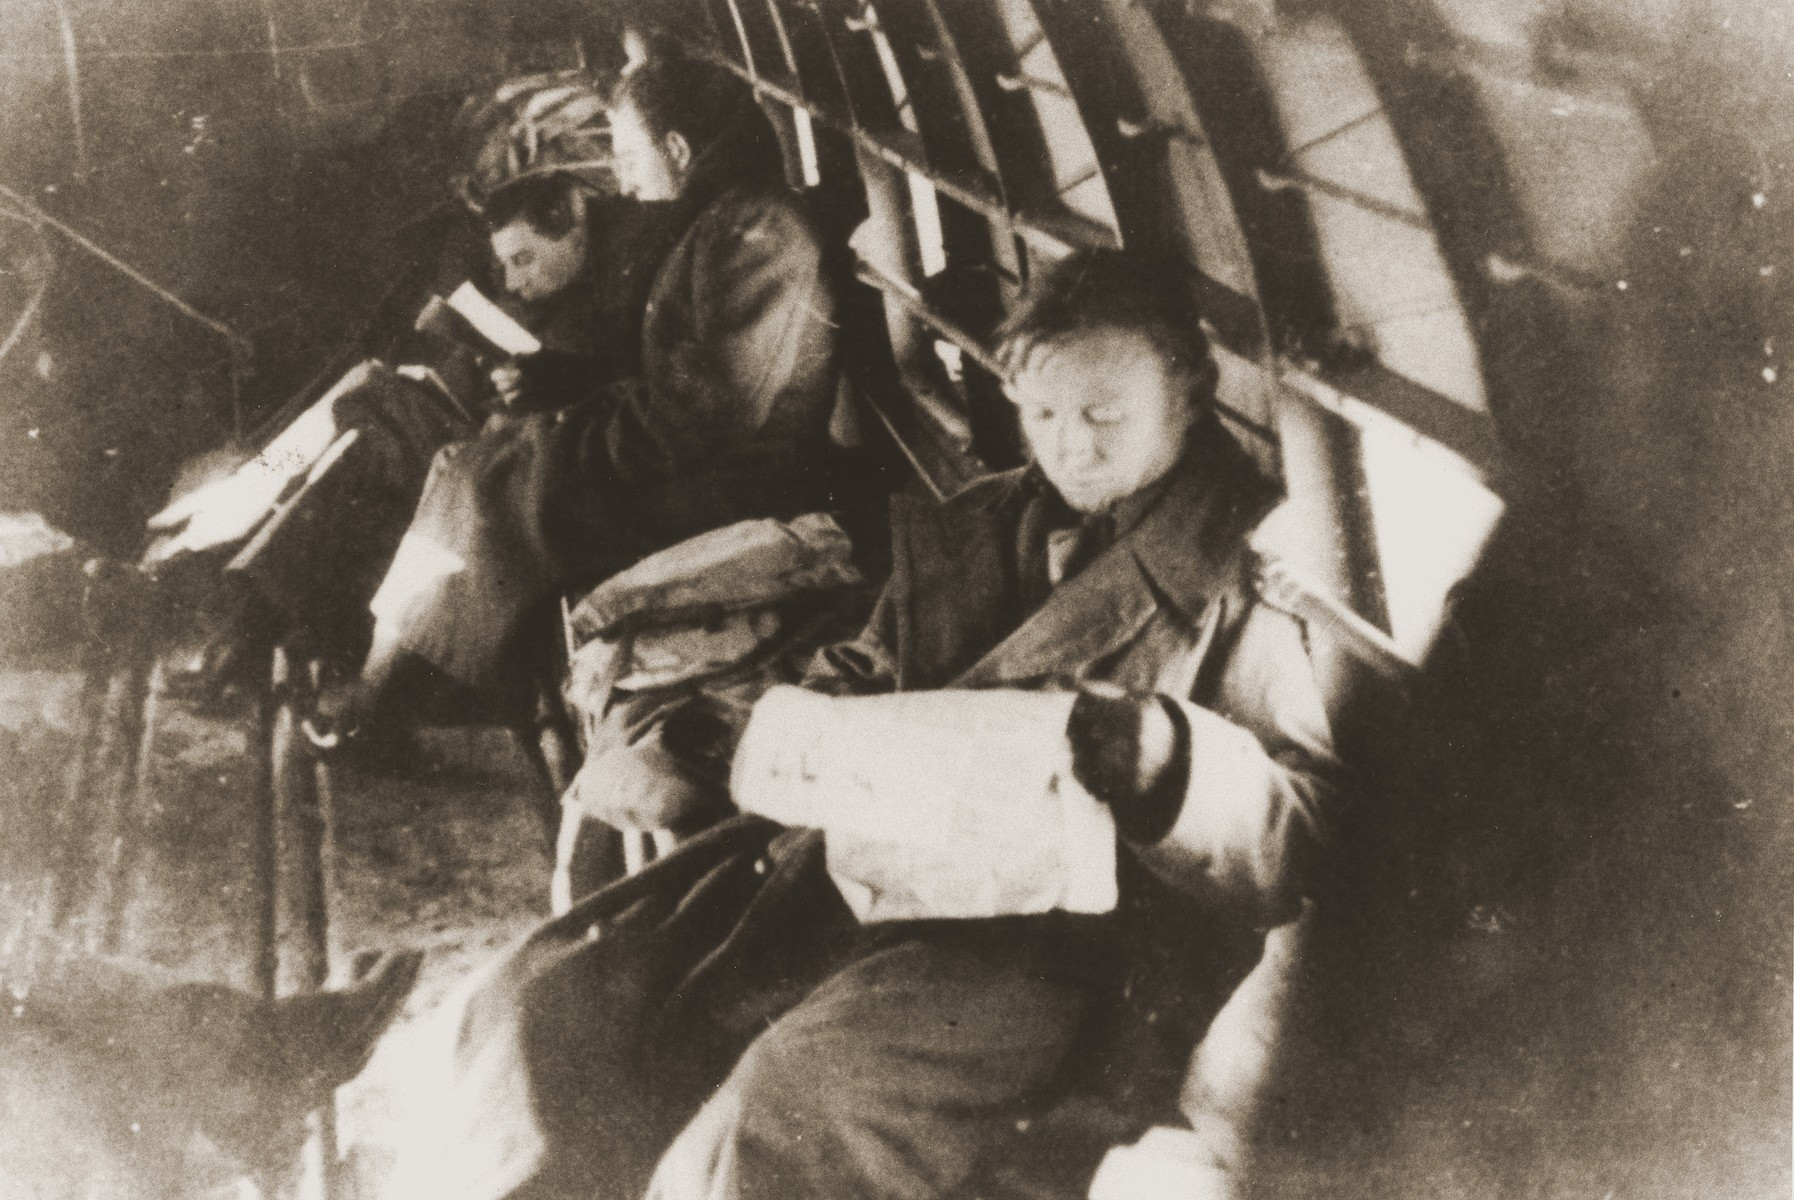 Palestinian Jewish parachutists read on board the airplane before being dropped into Yugoslavia.